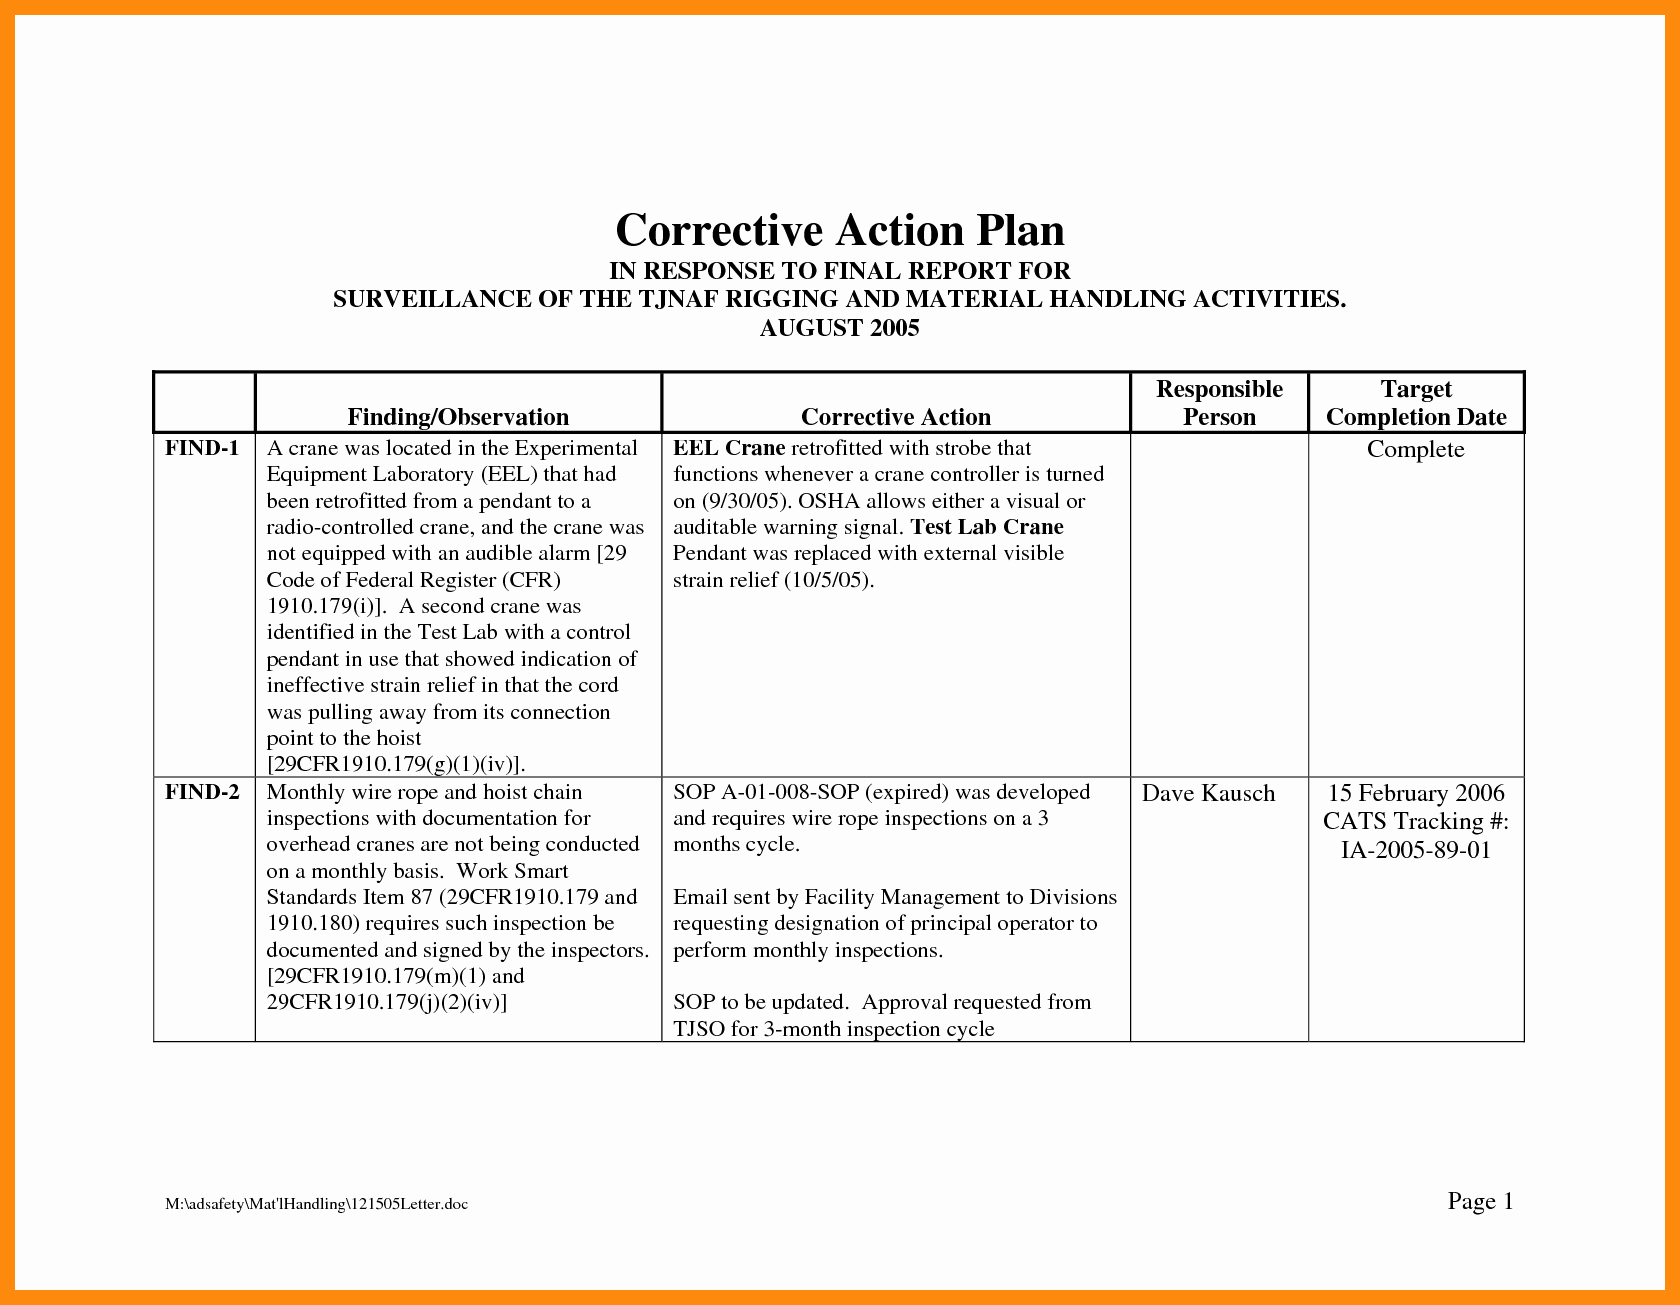 Corrective Action Plan Template Word Elegant Audit Corrective Action Plan Template Doc – Guatemalago